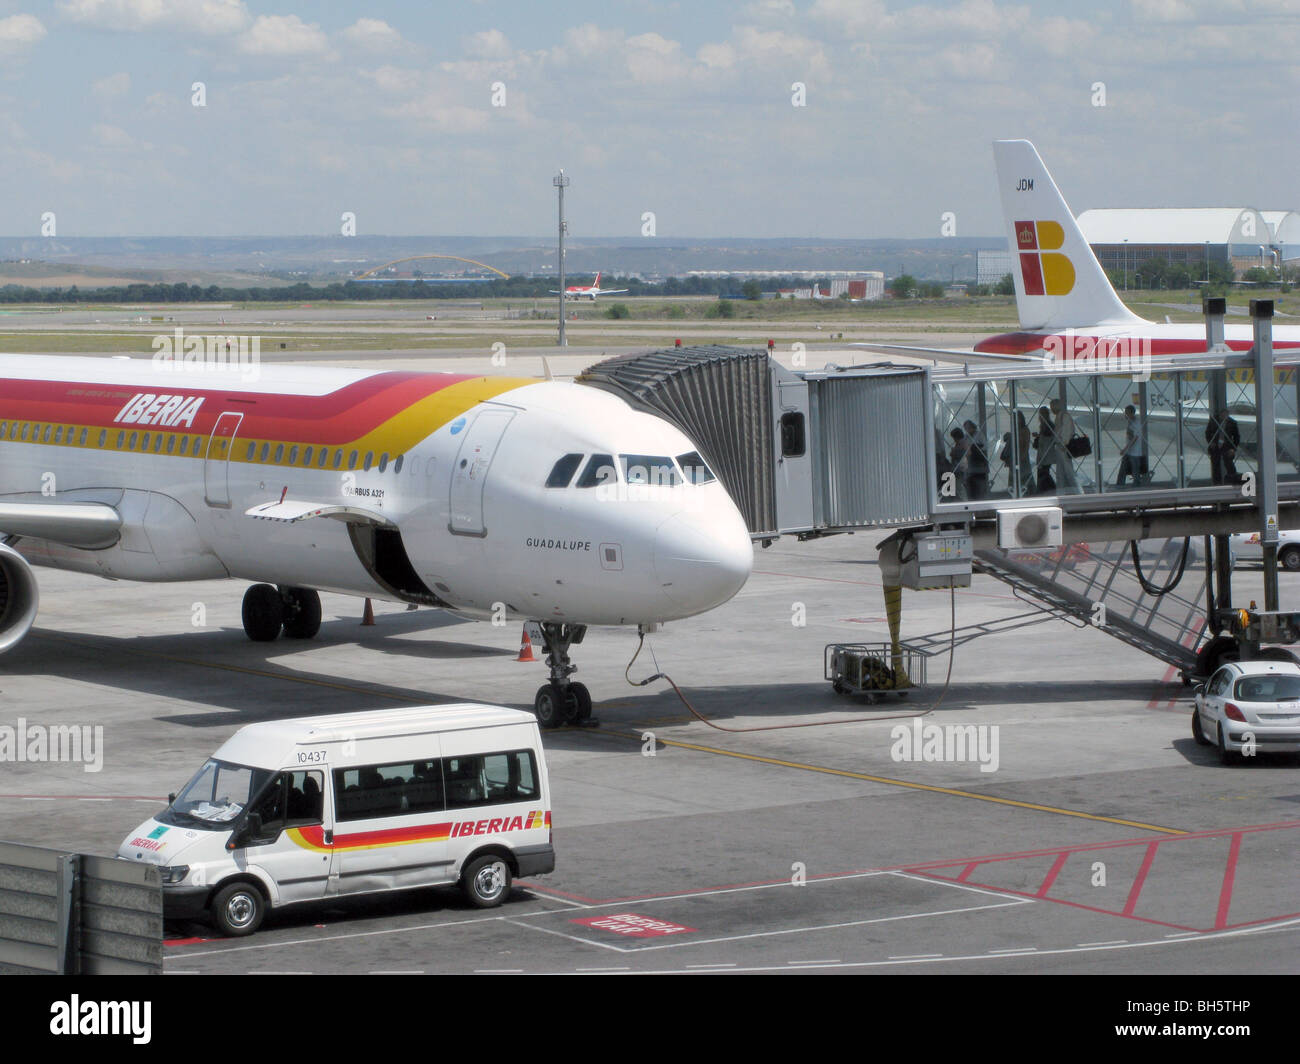 SPAIN. IBERIA  AEROPLANE READY TO DEPART AT NEW TERMINAL AT MADRID AIRPORT - Stock Image